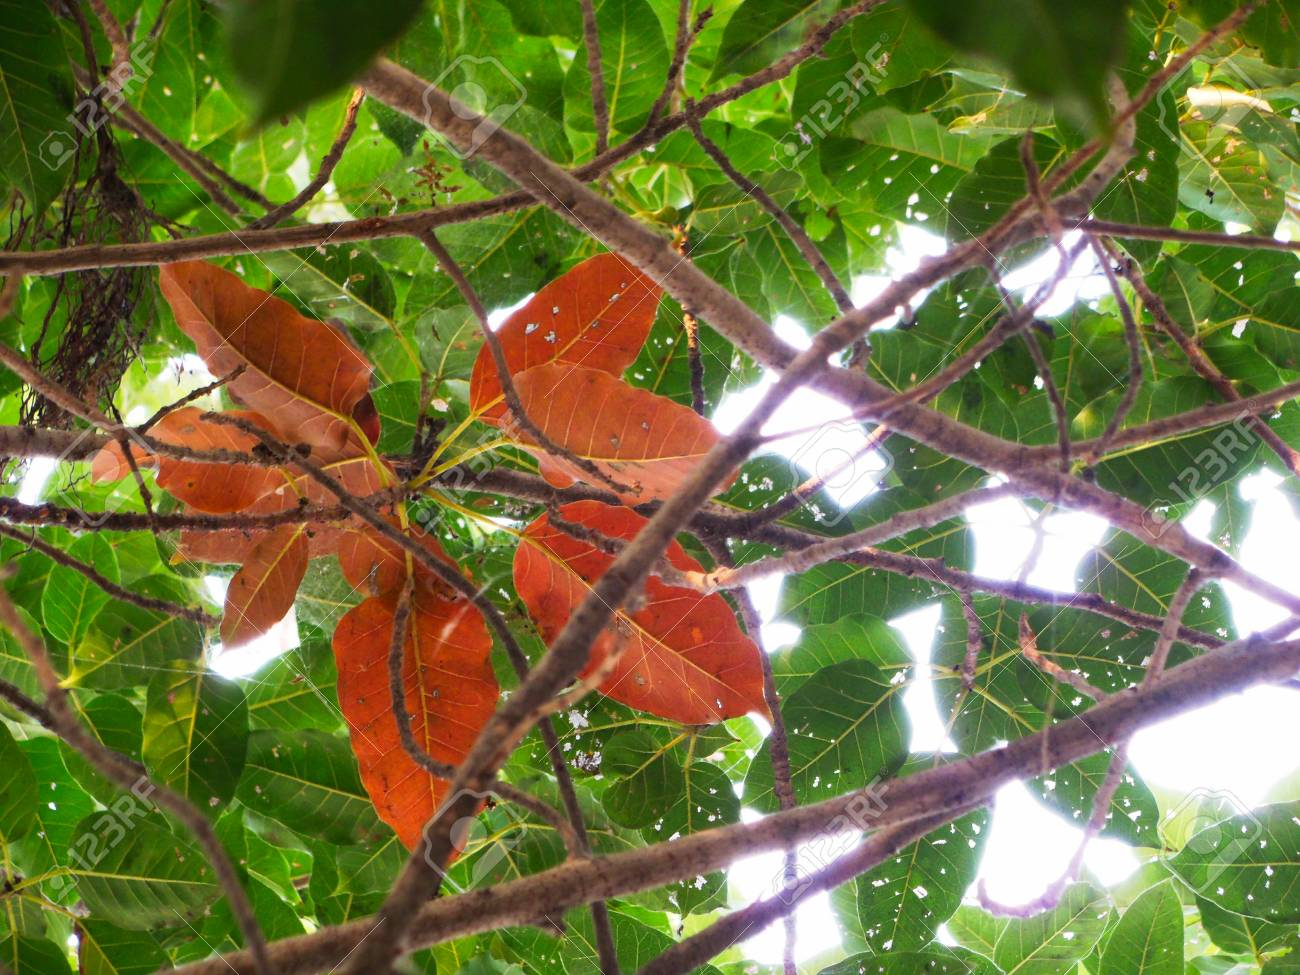 Banyan Tree Red Leaves With Green Leaves In Background Stock Photo, Picture And Royalty Free Image. Image 90230633.